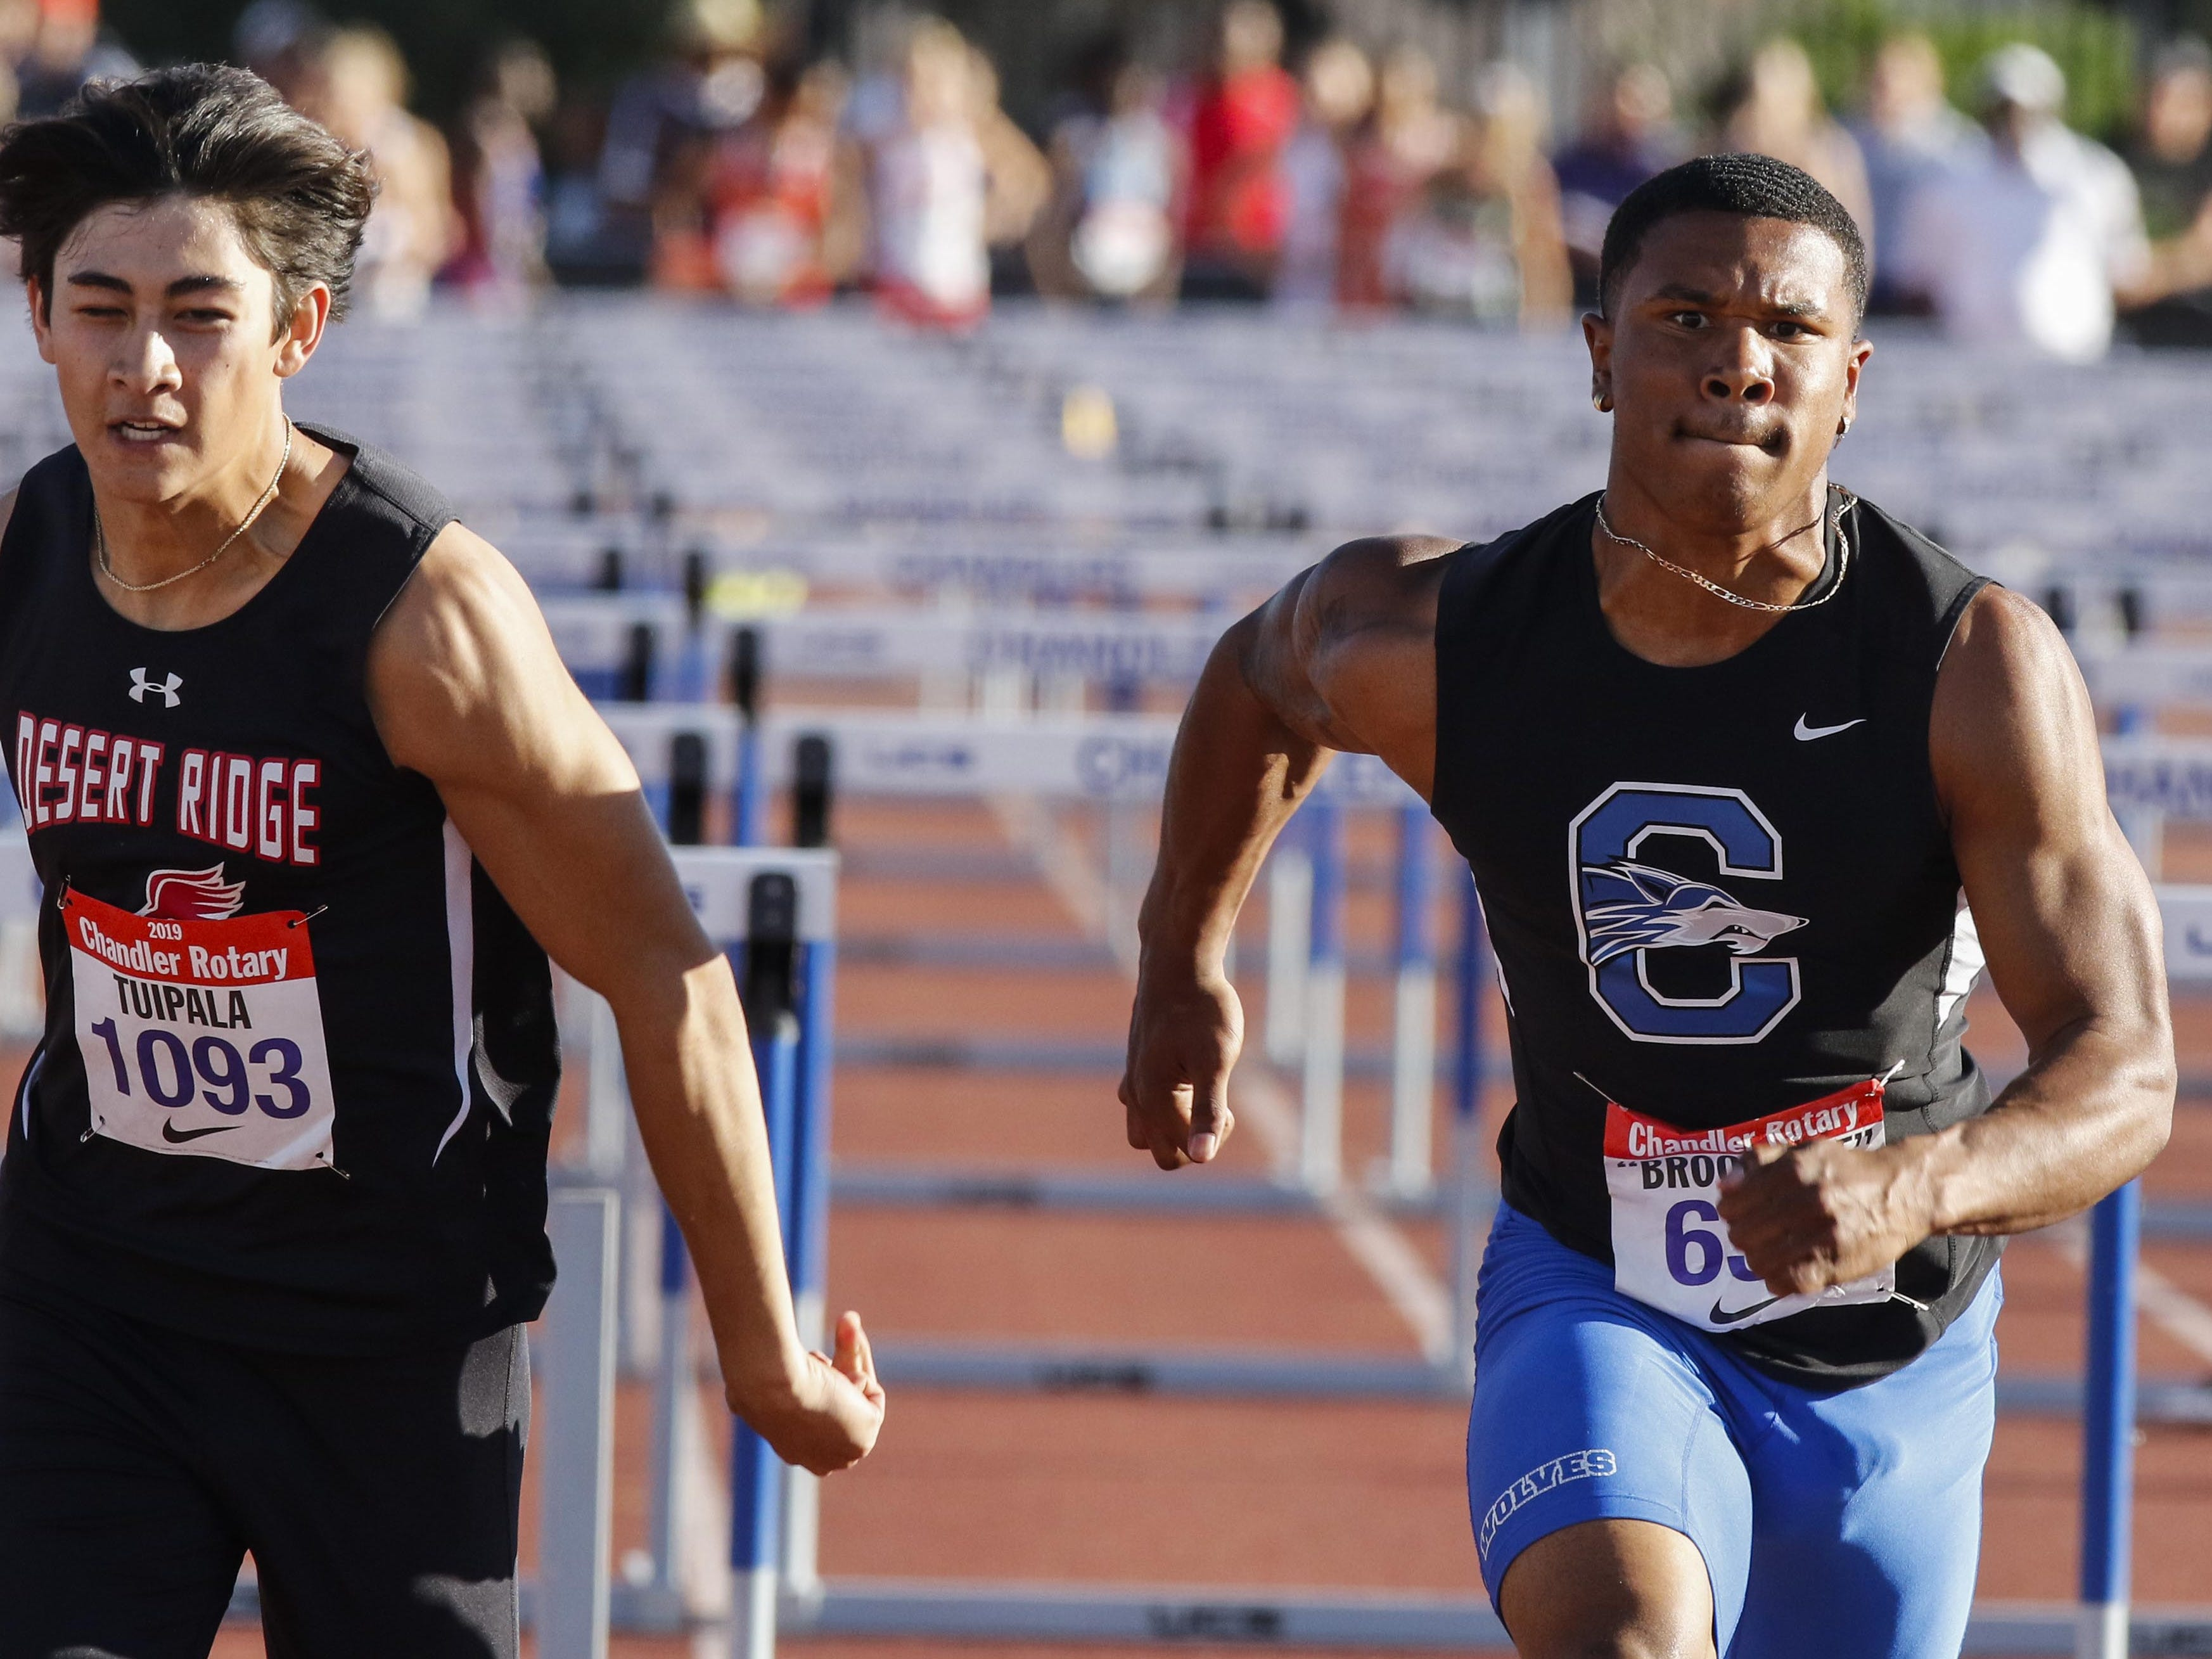 Desert Ridge's Koa Tuipala edges Chandlerr's DeCarlos Brooks in the 110 Boy's High Hurdles during the 79th Annual Nike Chandler Rotary Invitational  March 23, 2019.  Tuipala won the event in 14.30 over Brooks' 14.31.